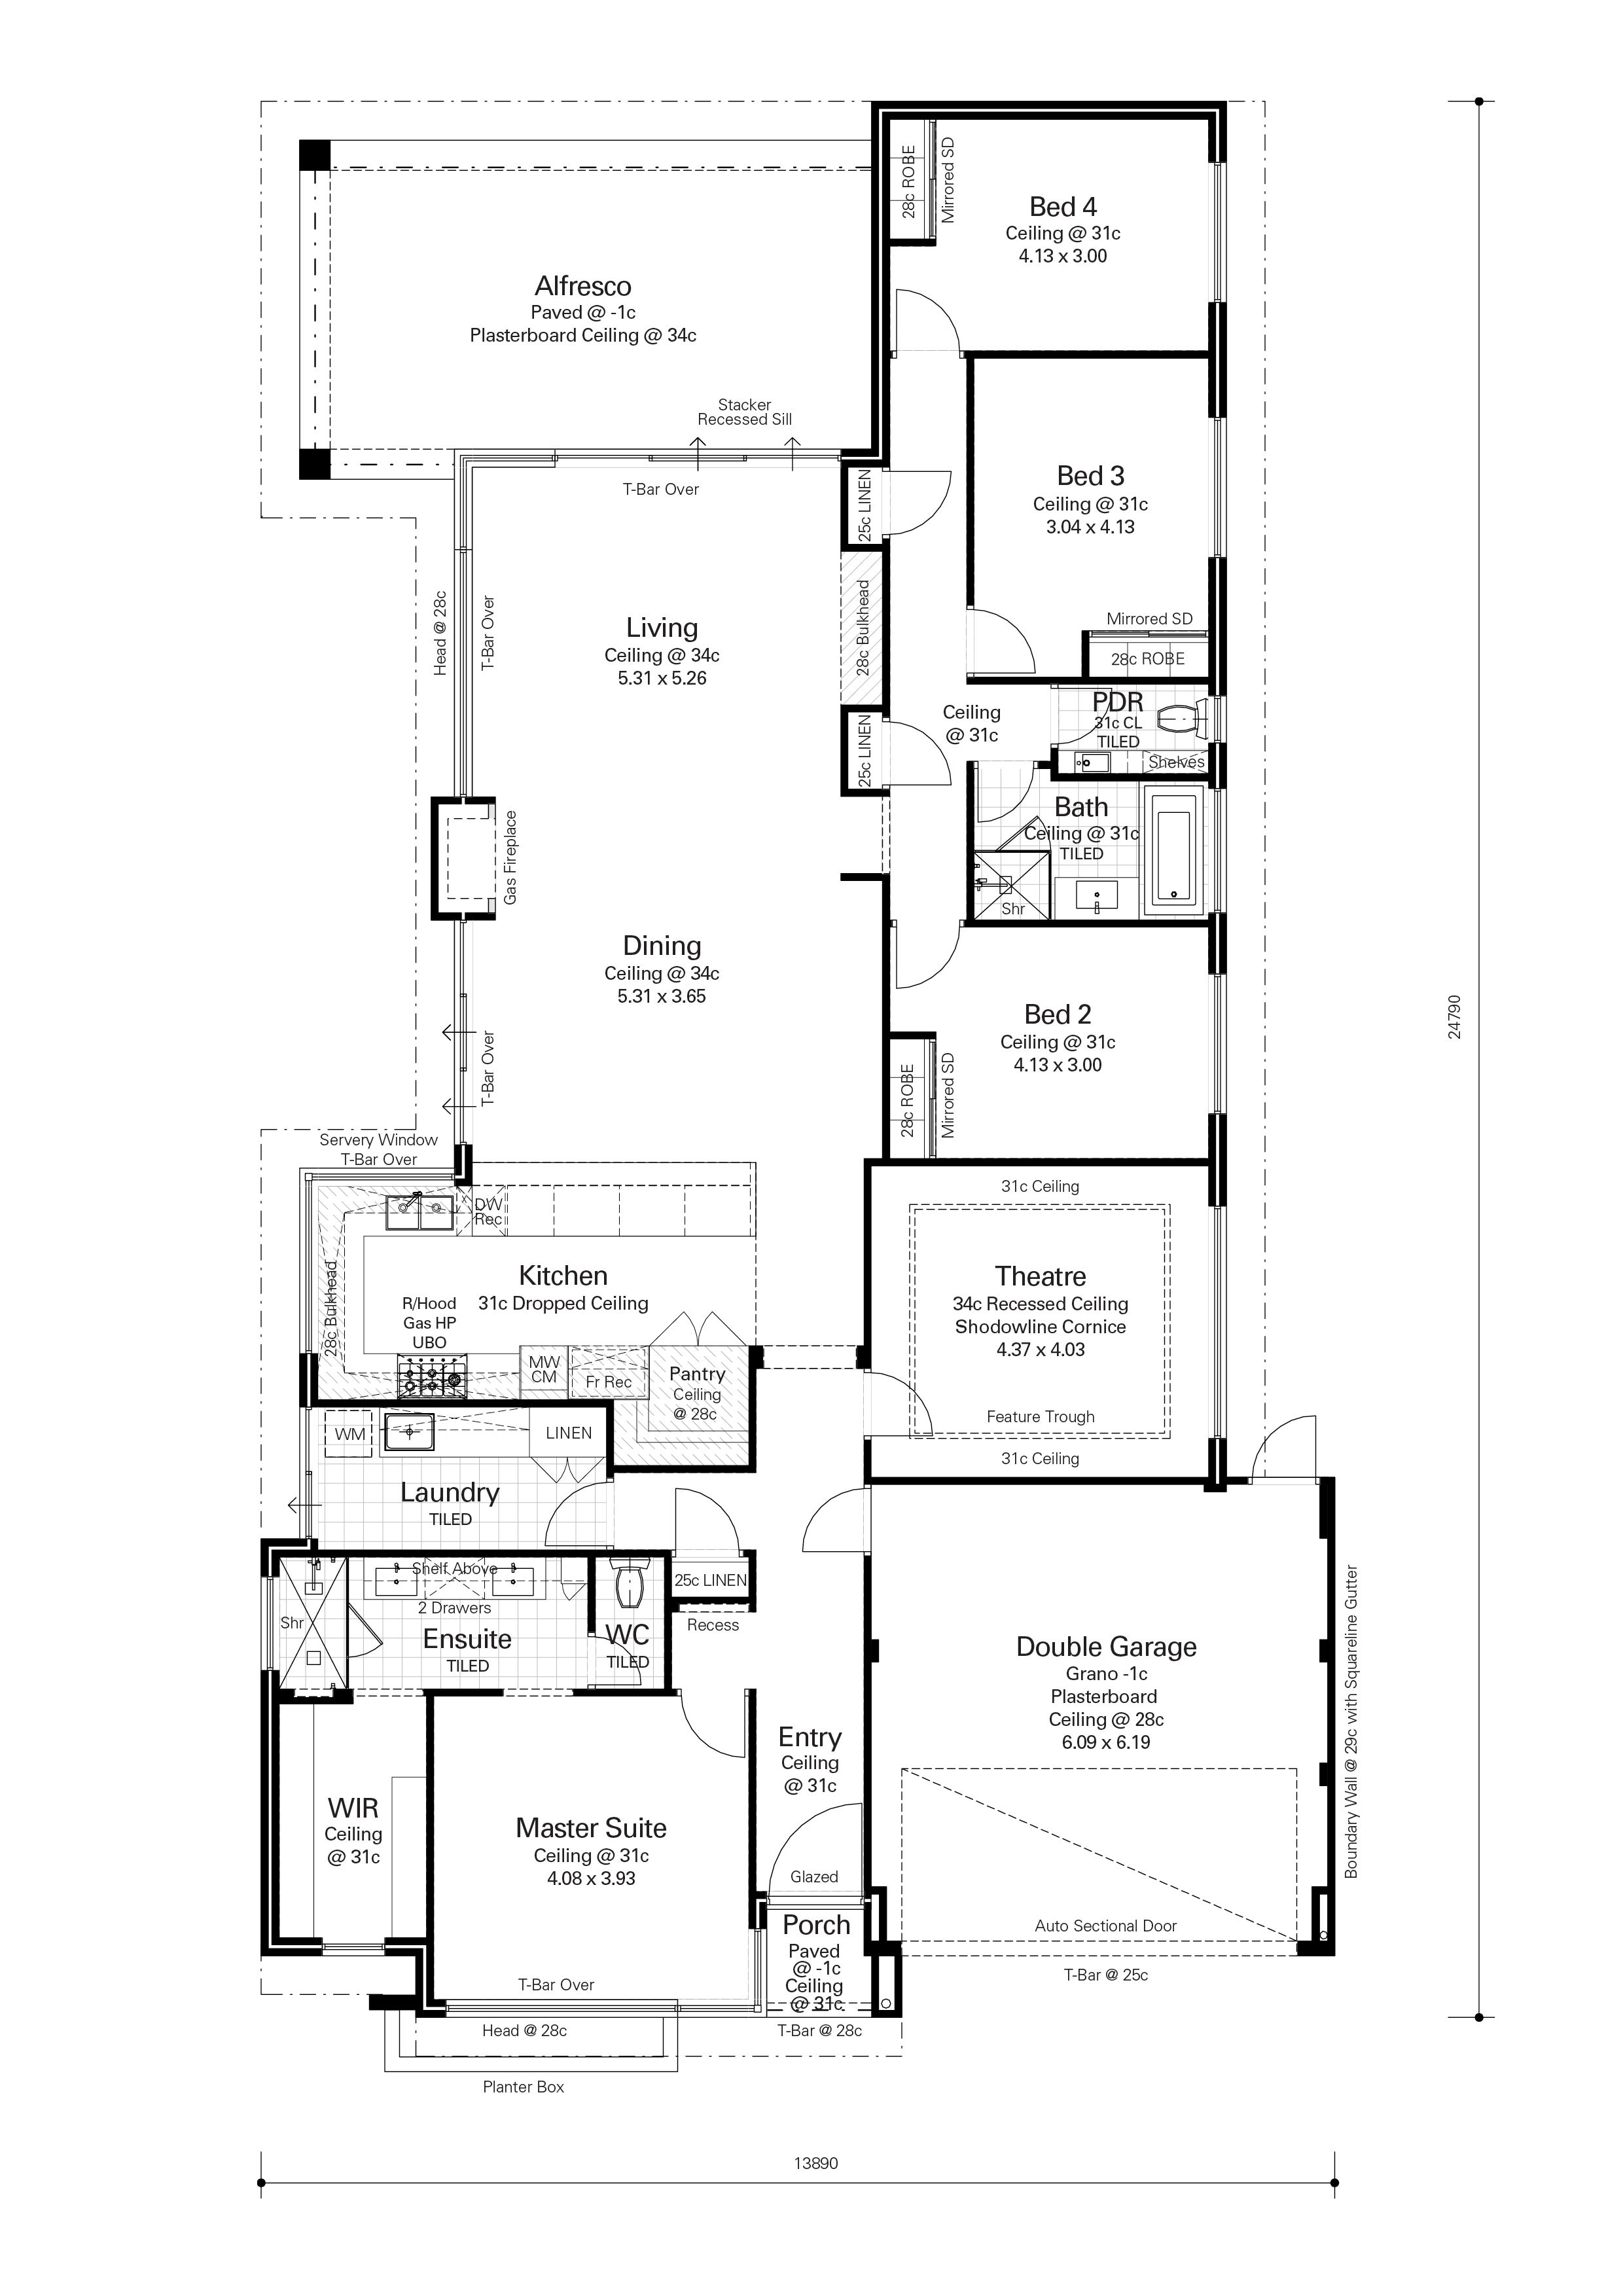 Floor Plan Friday: U-shaped kitchen with servery and ... on cape cod house plans with garage, narrow house plans with garage, duplex plans with garage, l-shaped house with garage, craftsman house plans with garage, curved house plans with garage, house plans with angled garage, tower house plans with garage, rancher house plans side garage, bungalow house plans with garage, u-shaped spanish house plans, saltbox house plans with garage, square house plans with garage, split level house plans with garage, tiny house plans with garage,